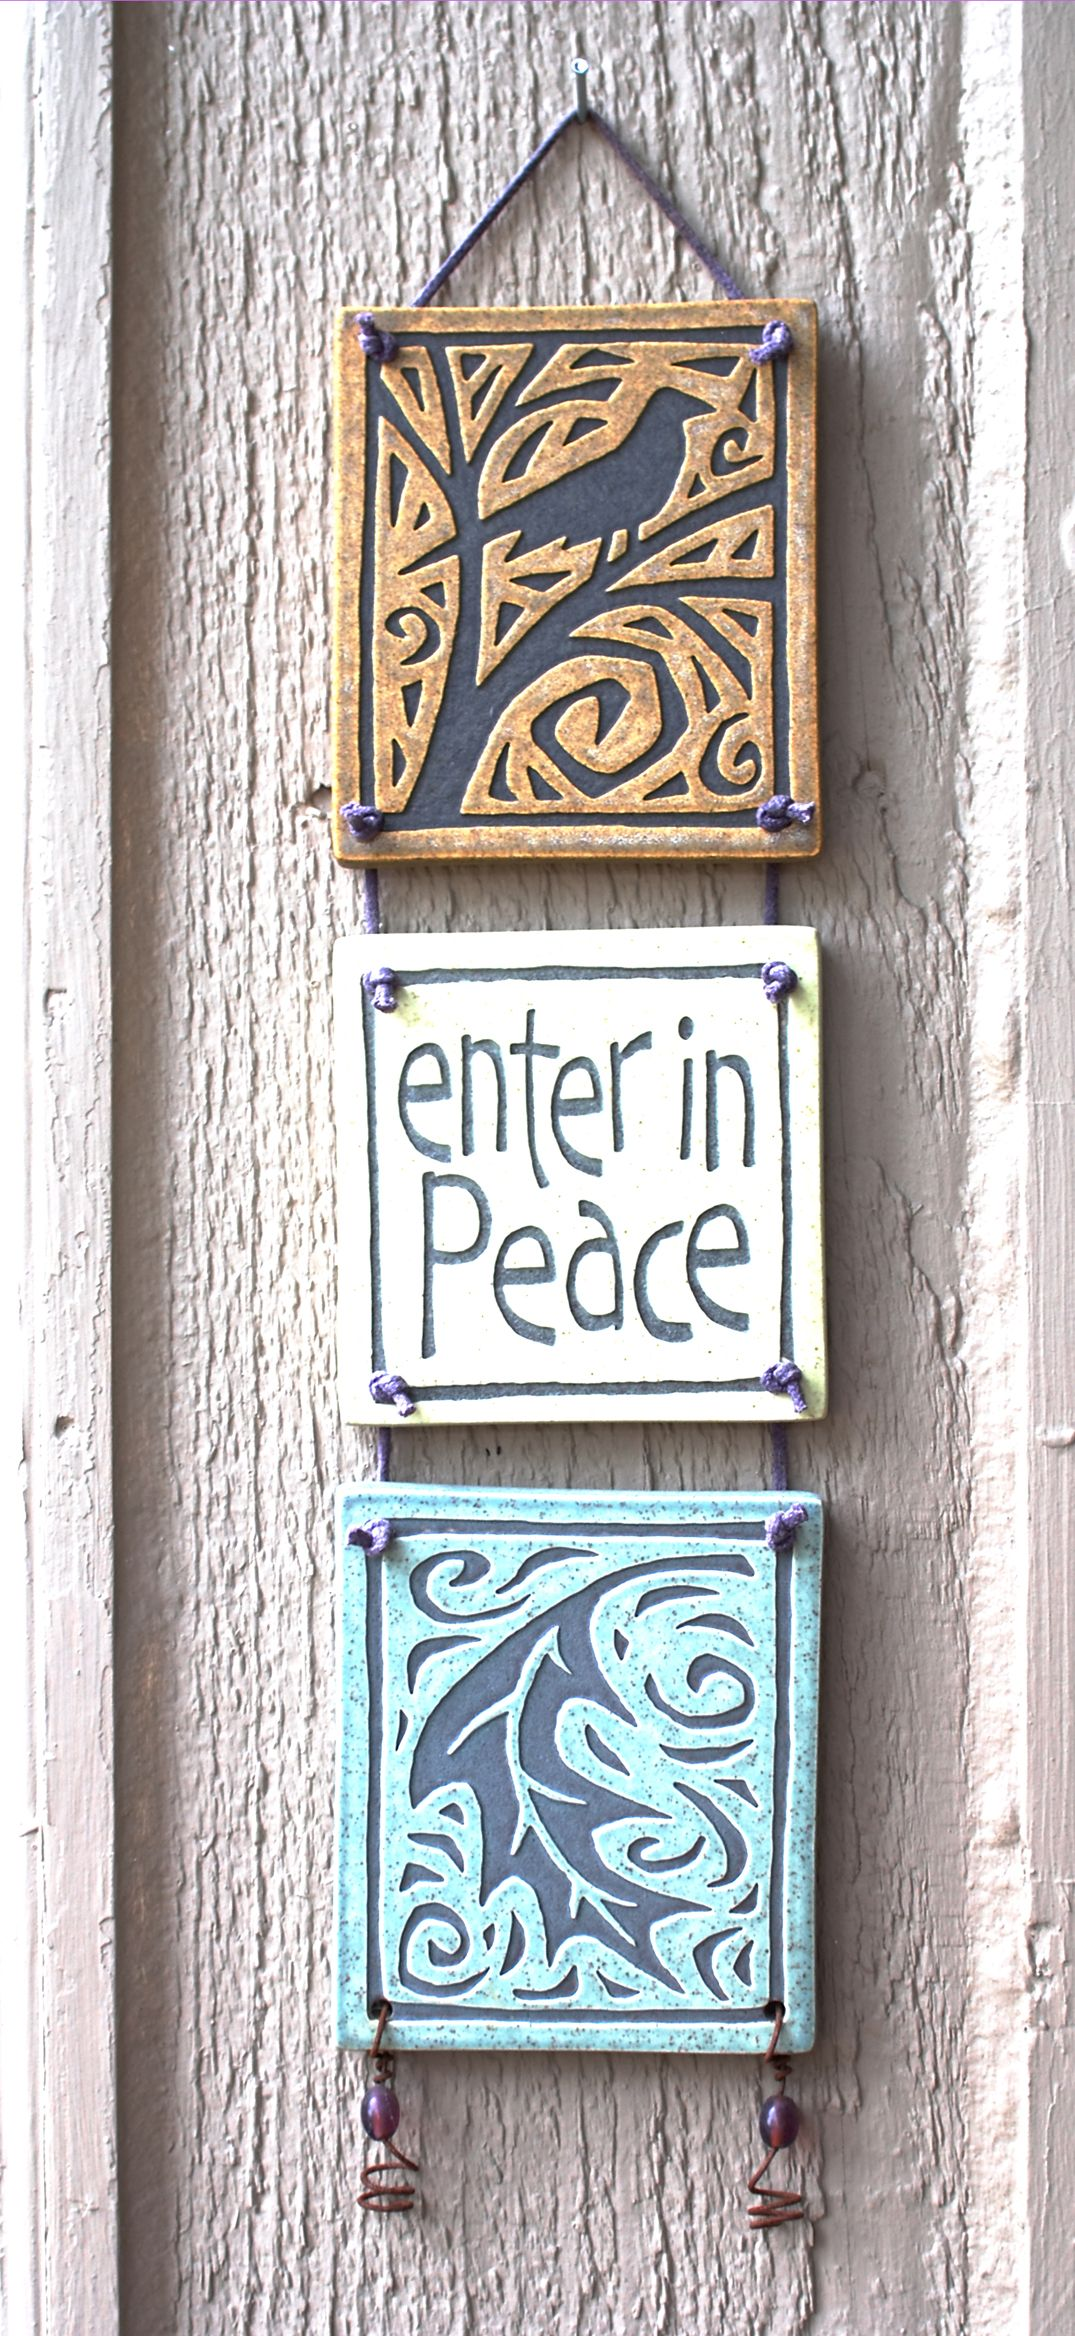 Good idea to hang house numbers too slab pottery pinterest ceramic hanging with 3 tiles nice for house numbers dailygadgetfo Choice Image